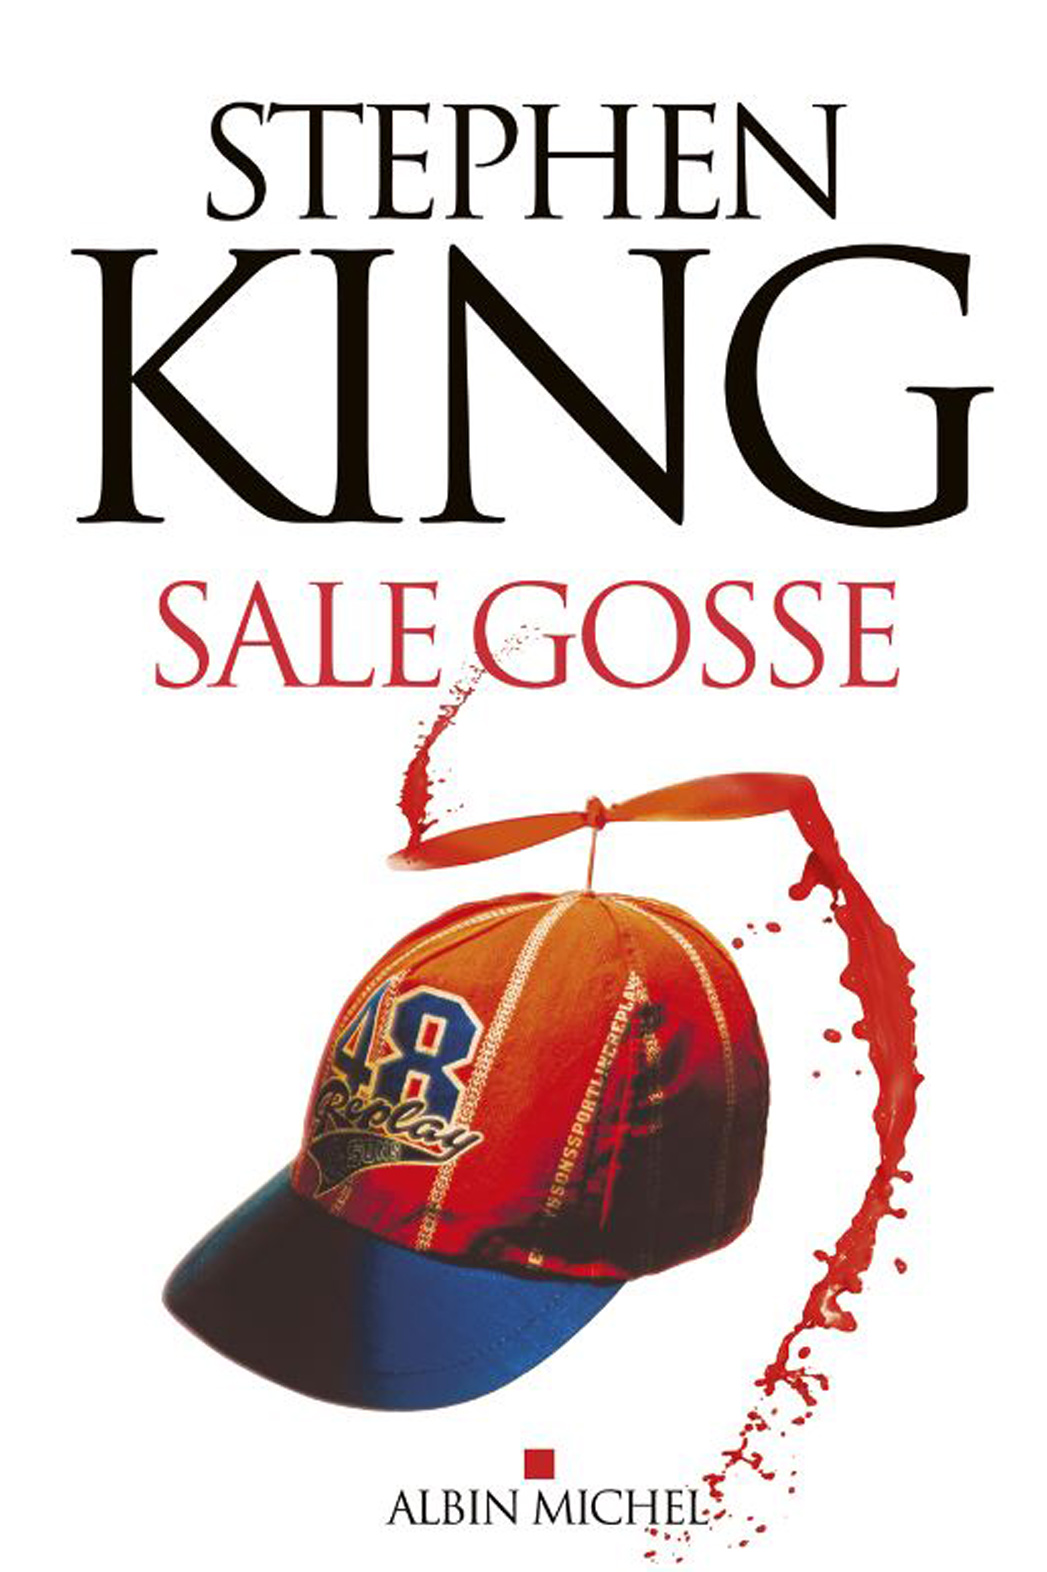 Stephen King Sale Gosse Book Cover - P 2014